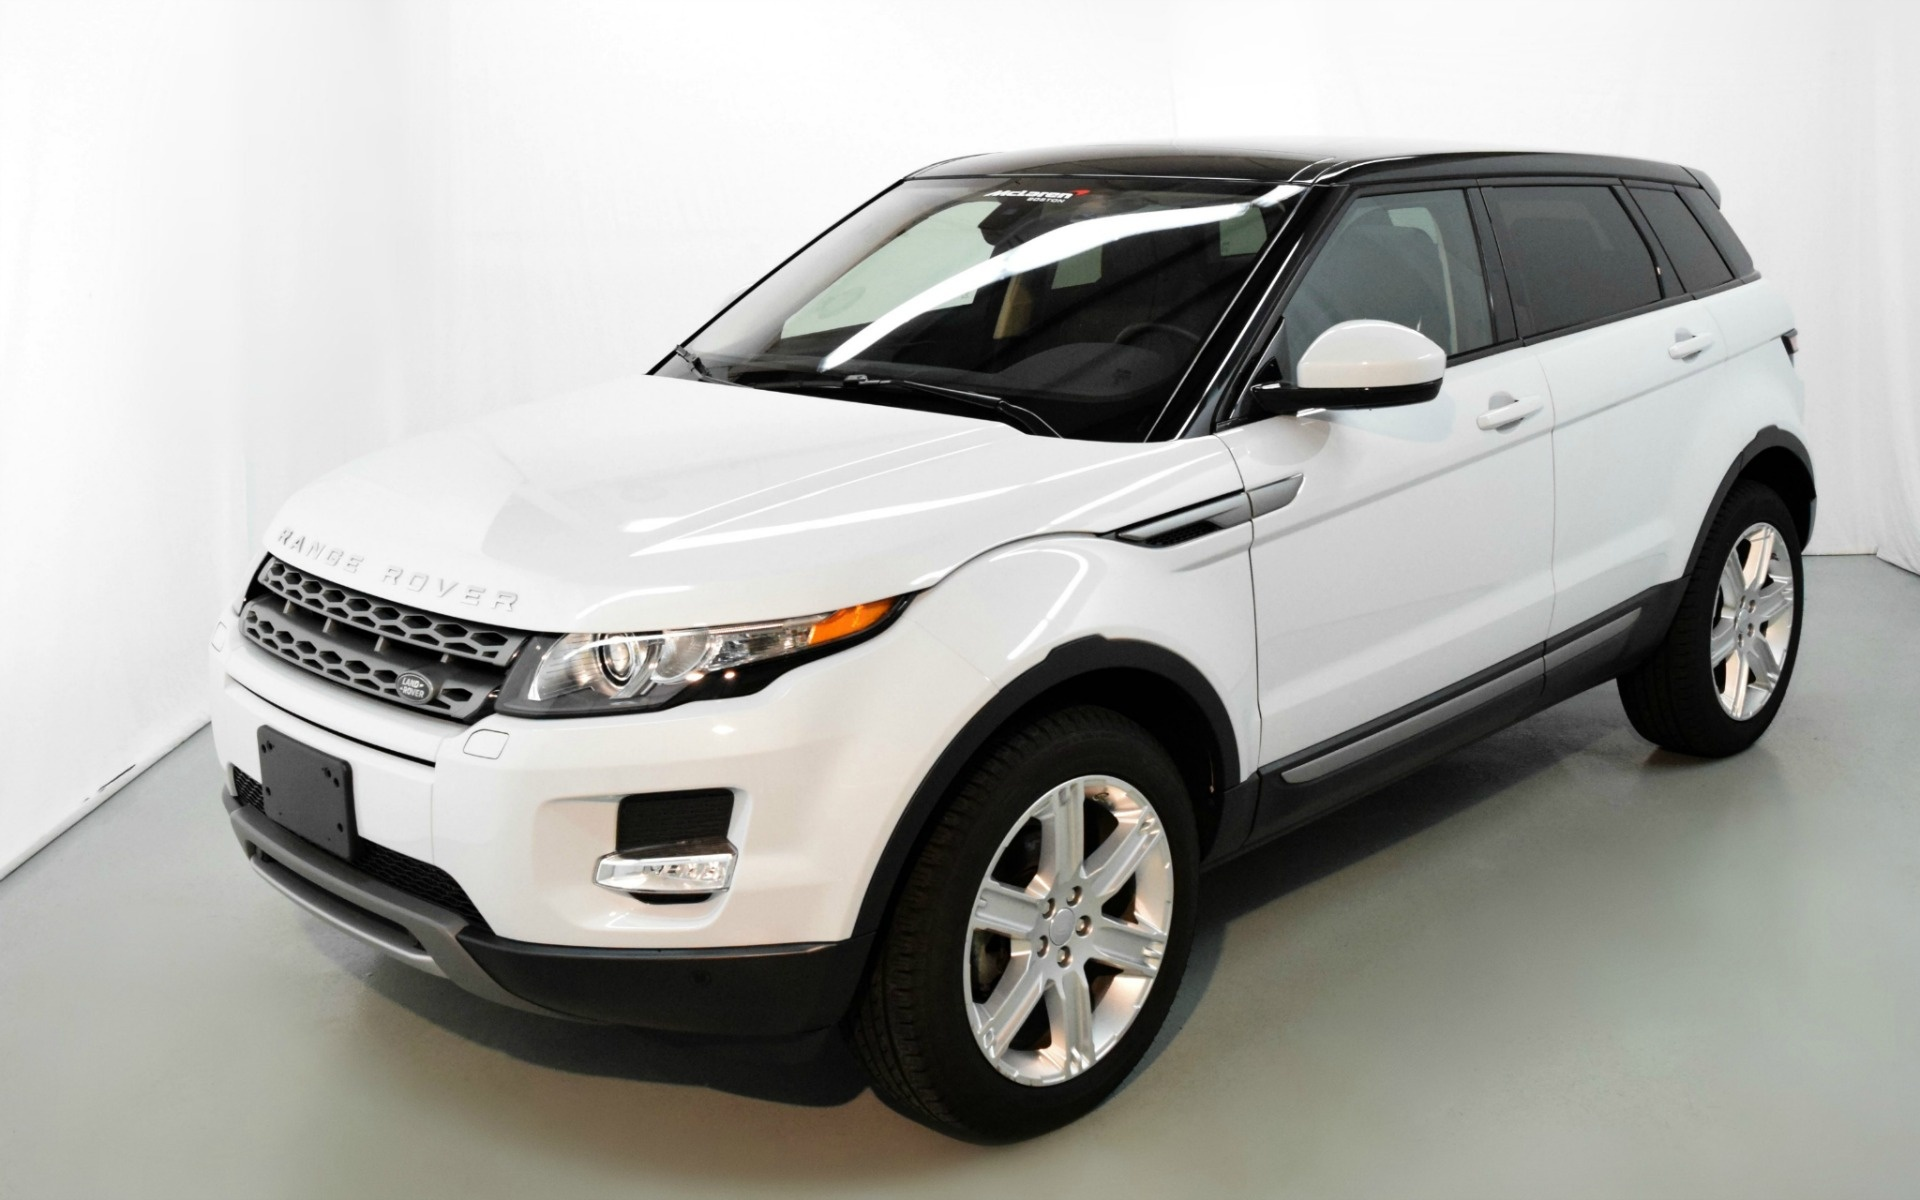 2015 land rover range rover evoque pure plus for sale in norwell ma 058013 mclaren boston. Black Bedroom Furniture Sets. Home Design Ideas